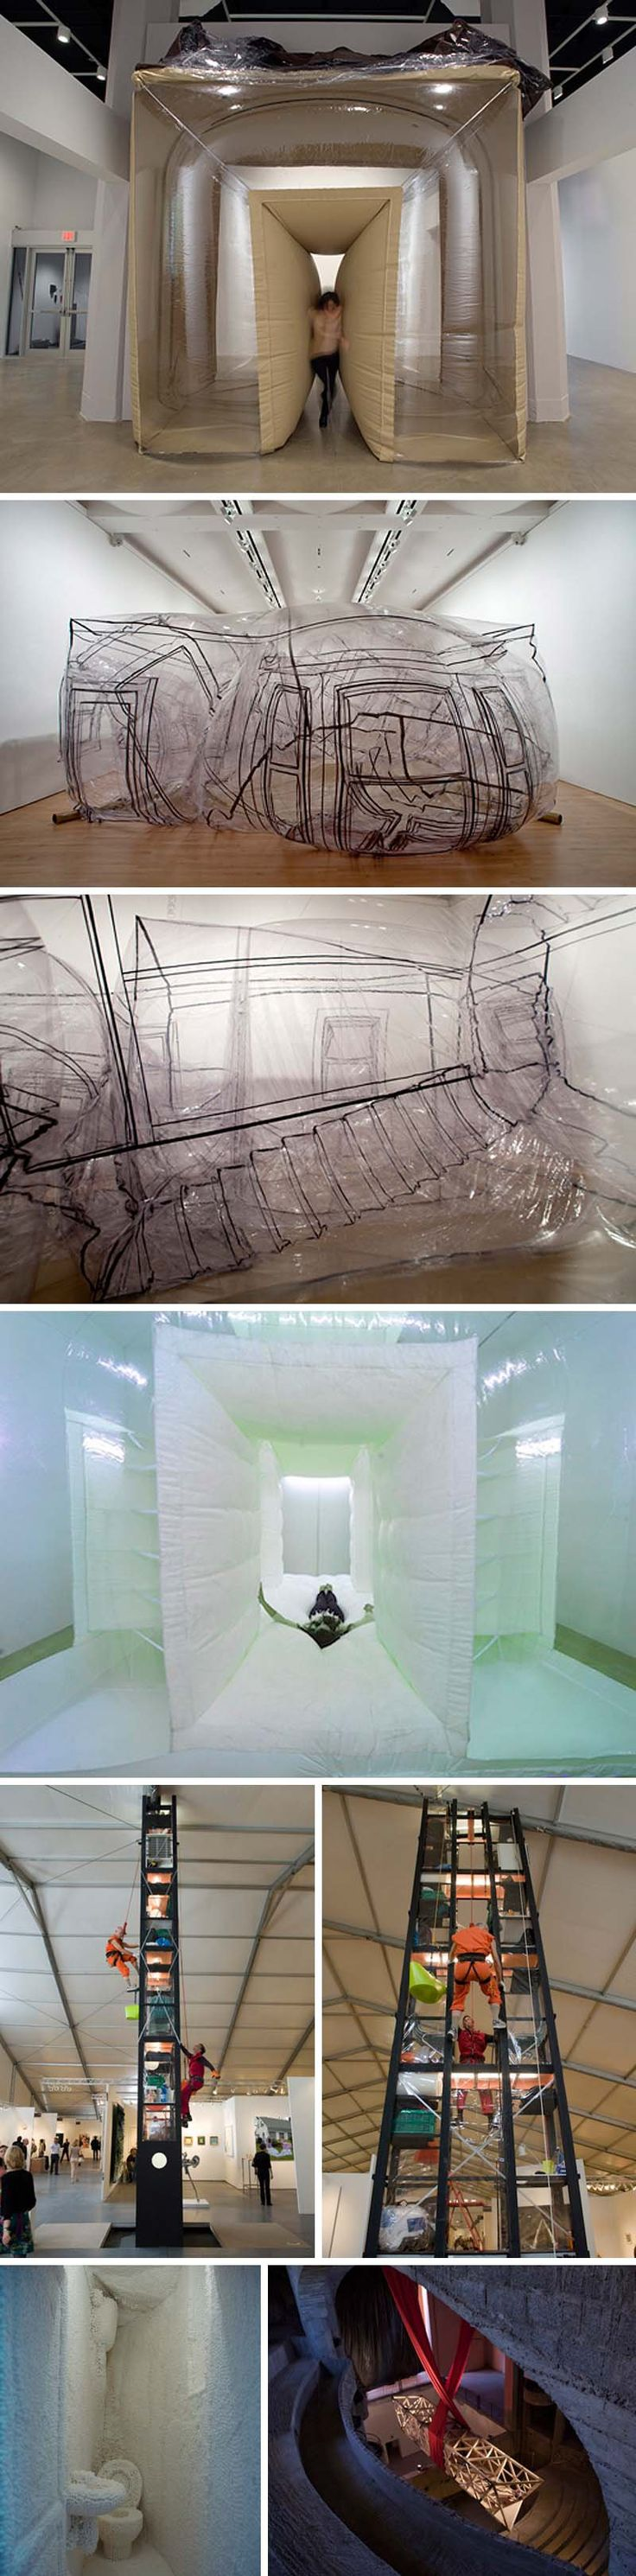 Interactive sculpture with an architecture bent, cool installations by Alex Schweder